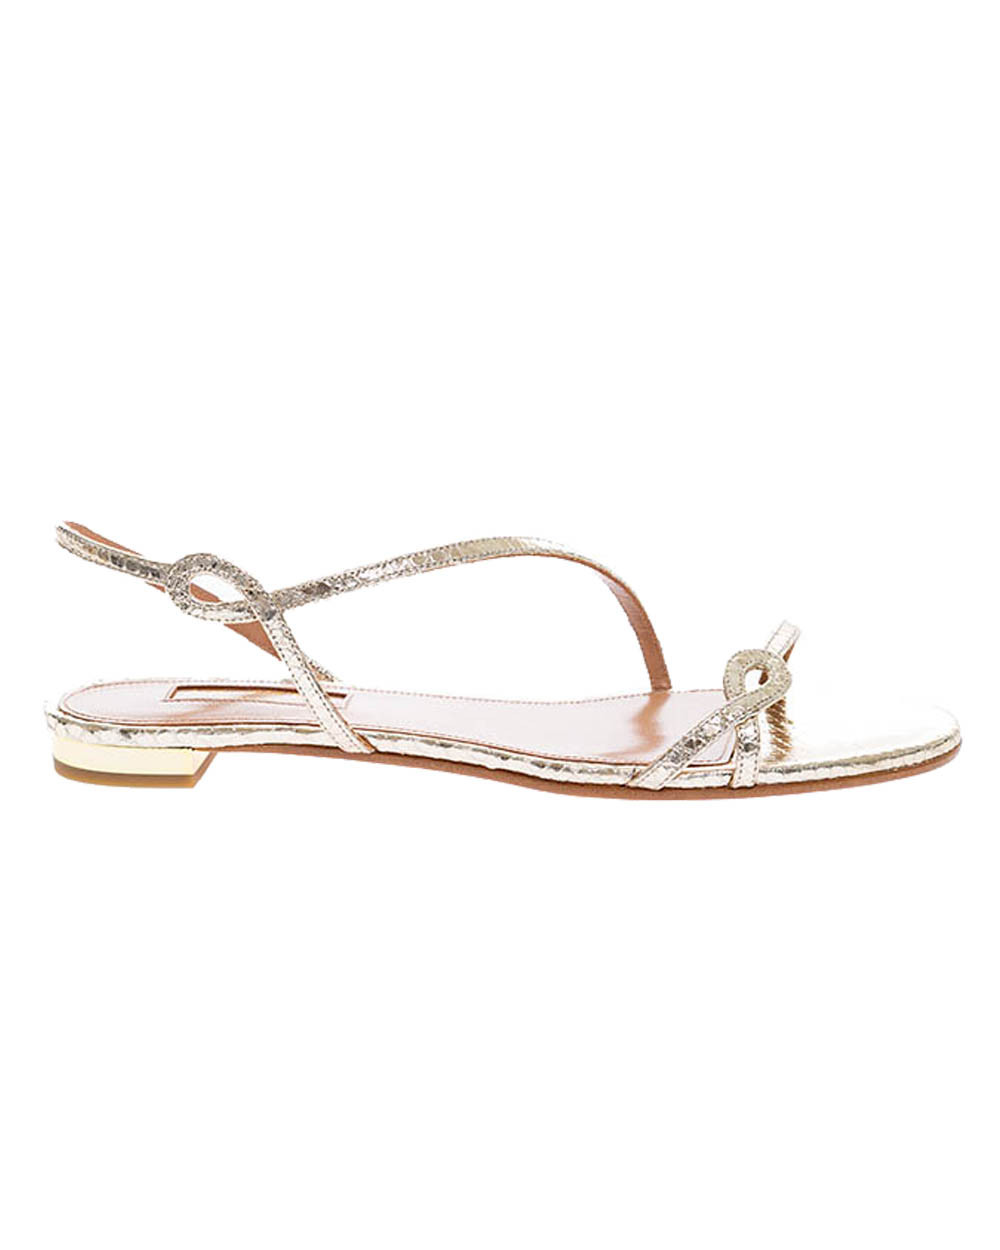 Serpentine - Calf leather sandals with python print and twisted straps 10